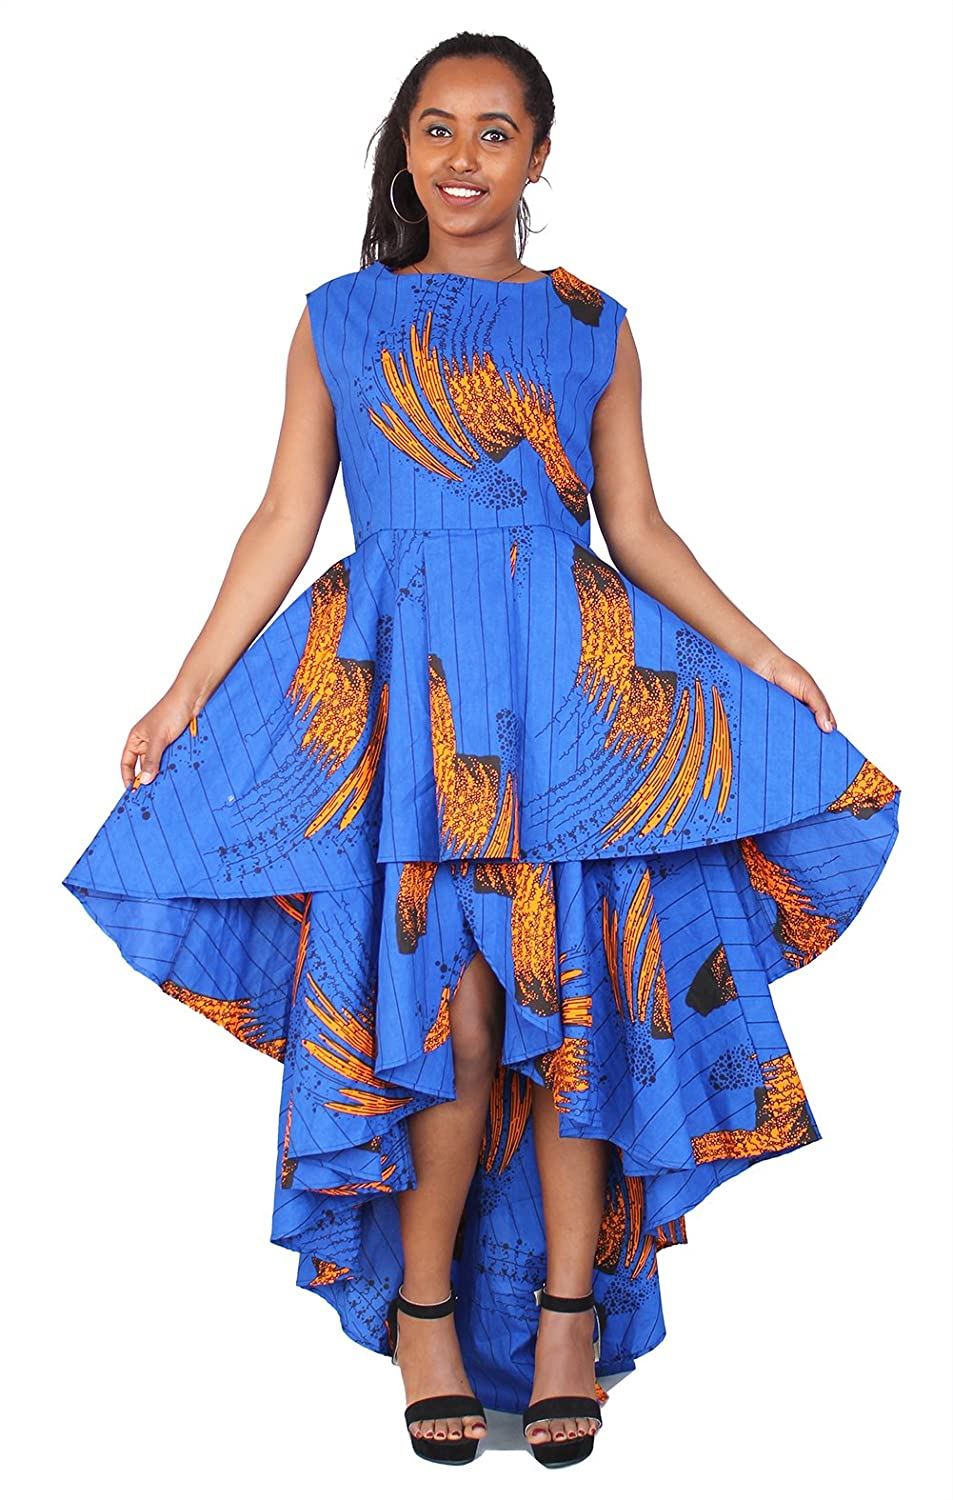 46e4296b4456 Top 10 wholesale African Skirt Suit Designs - Chinabrands.com